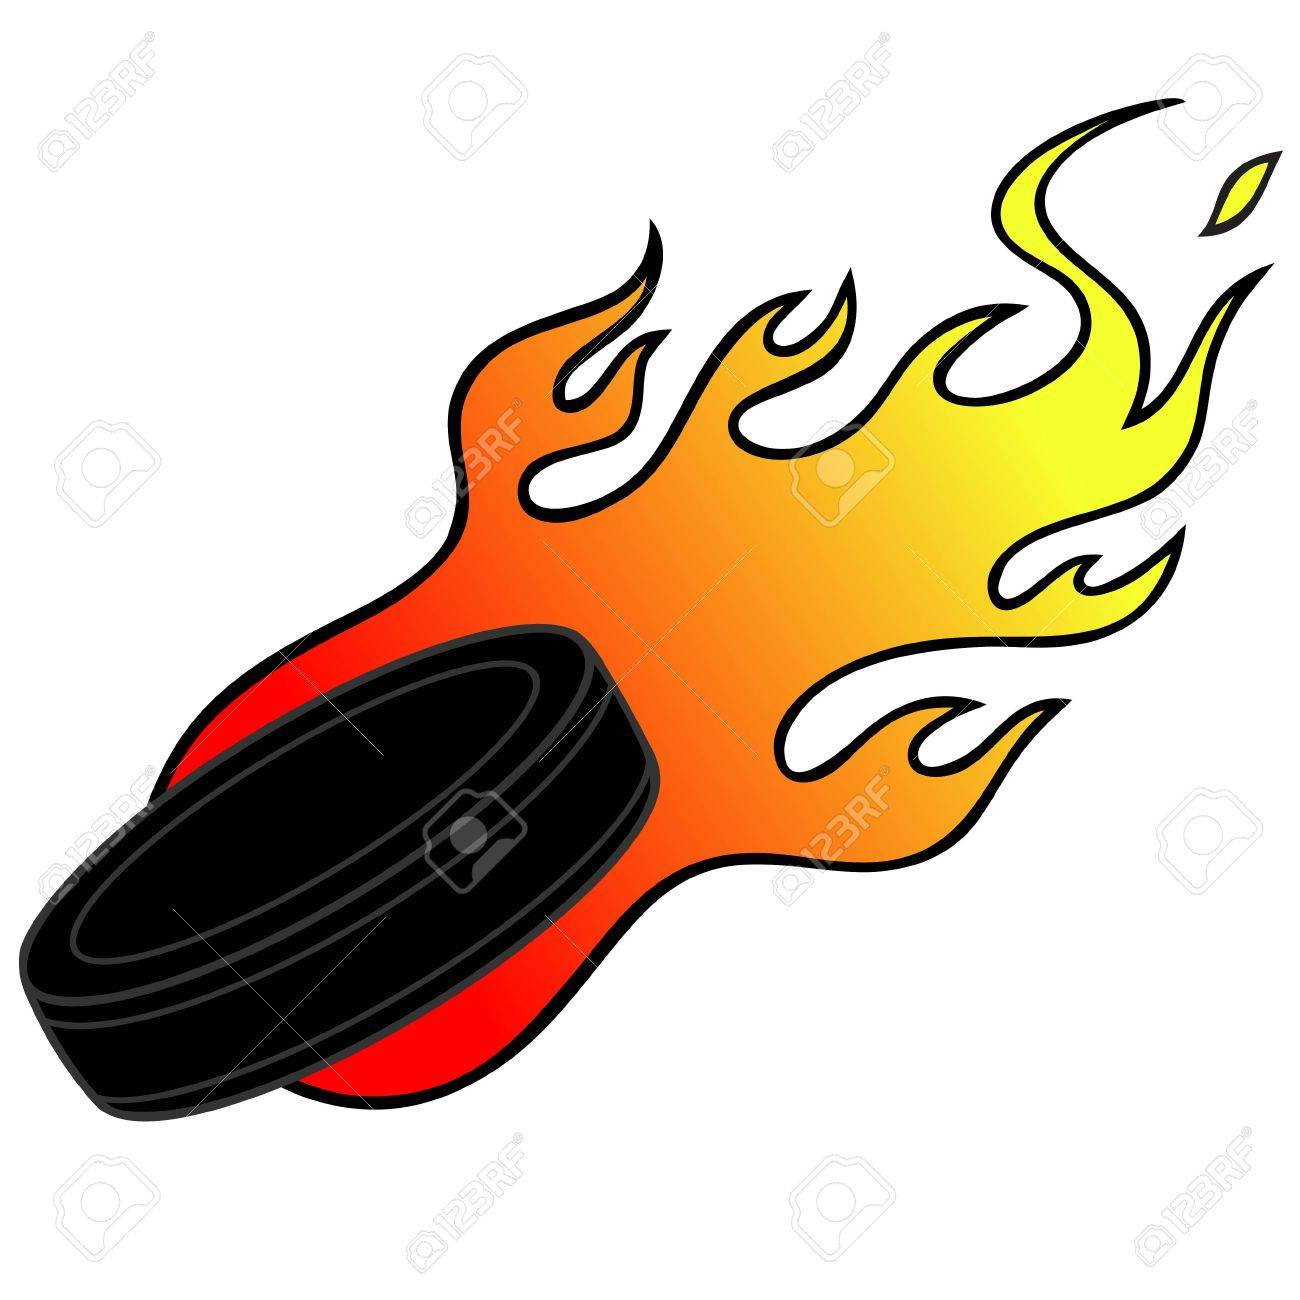 Hockey Puck with Flames.